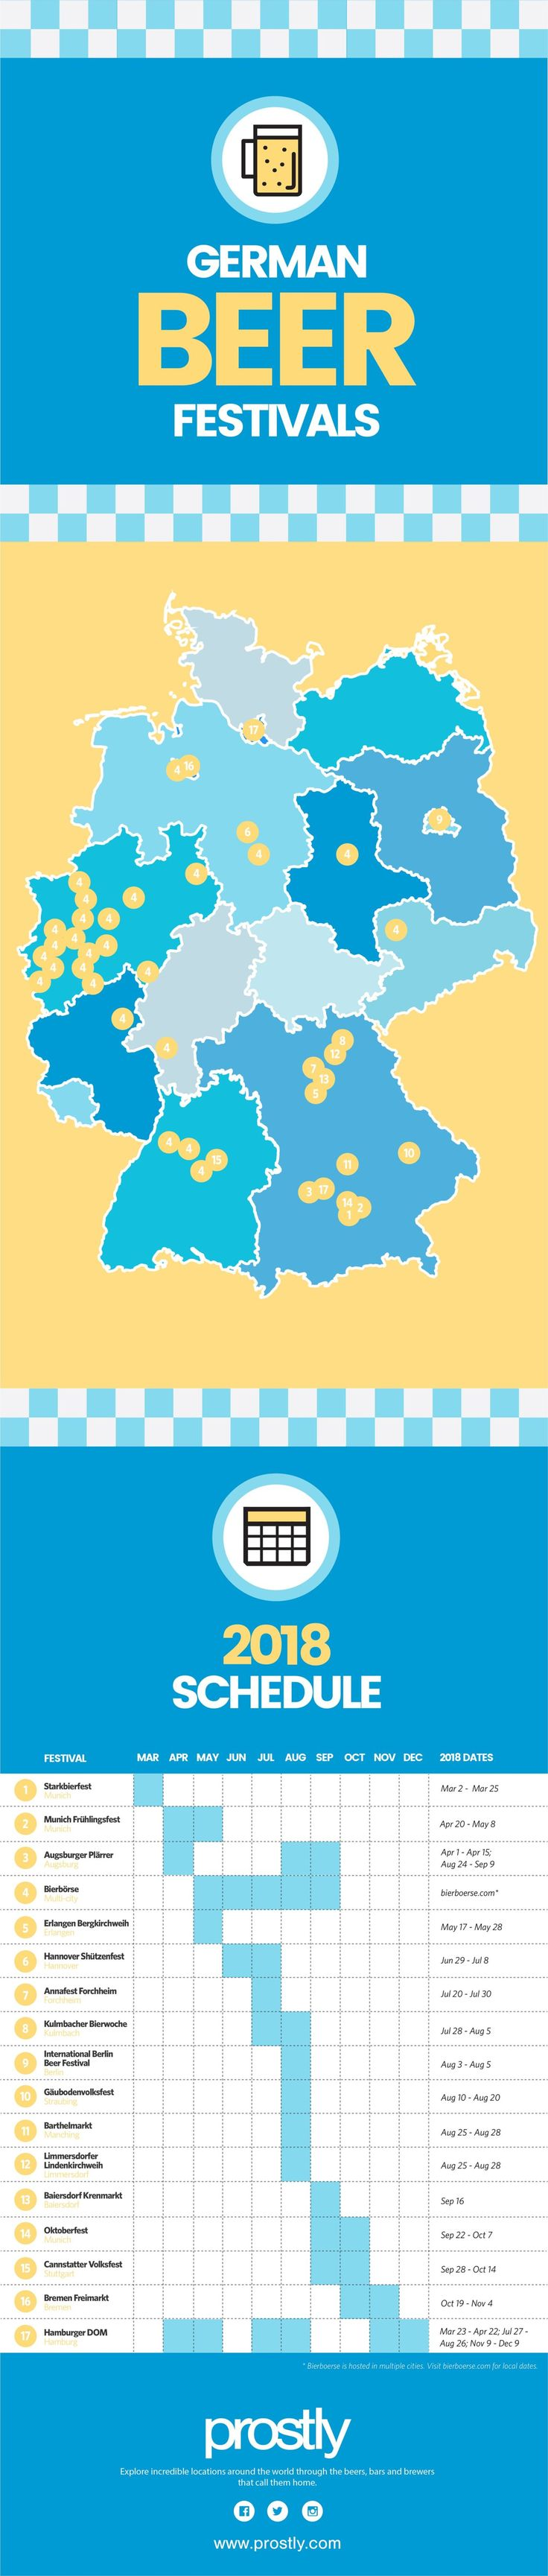 2018 German Beer Festival Guide and Infographic - Prostly